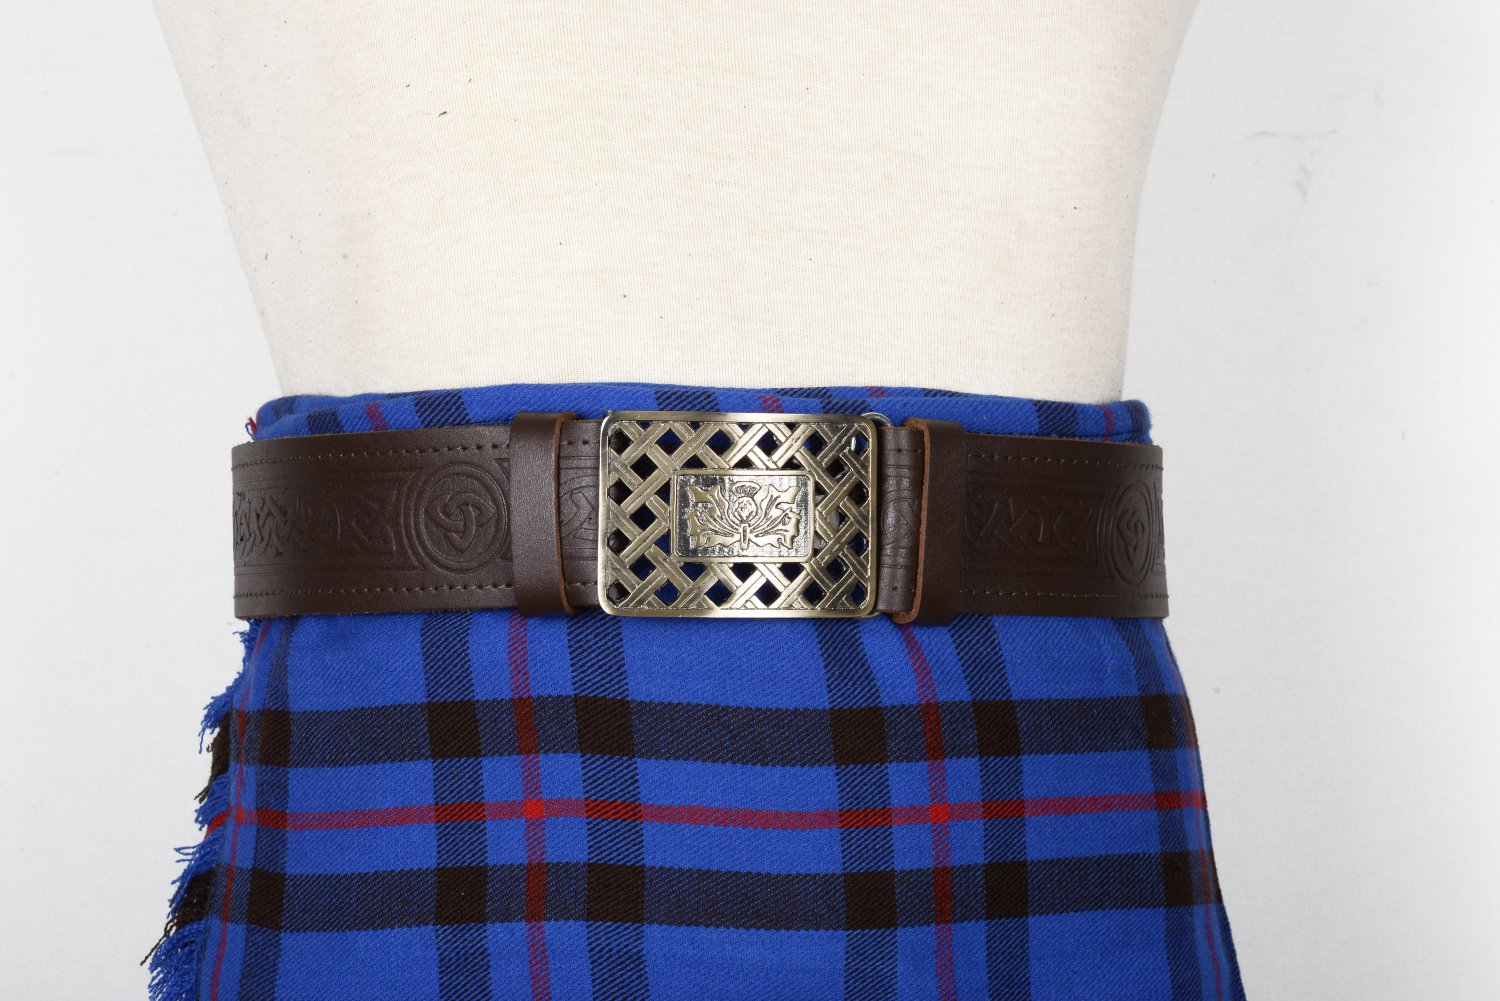 Traditional Scottish Leather Brown Kilt Belt -trinity Knot Celtic Embossing - Free Buckle Size 34